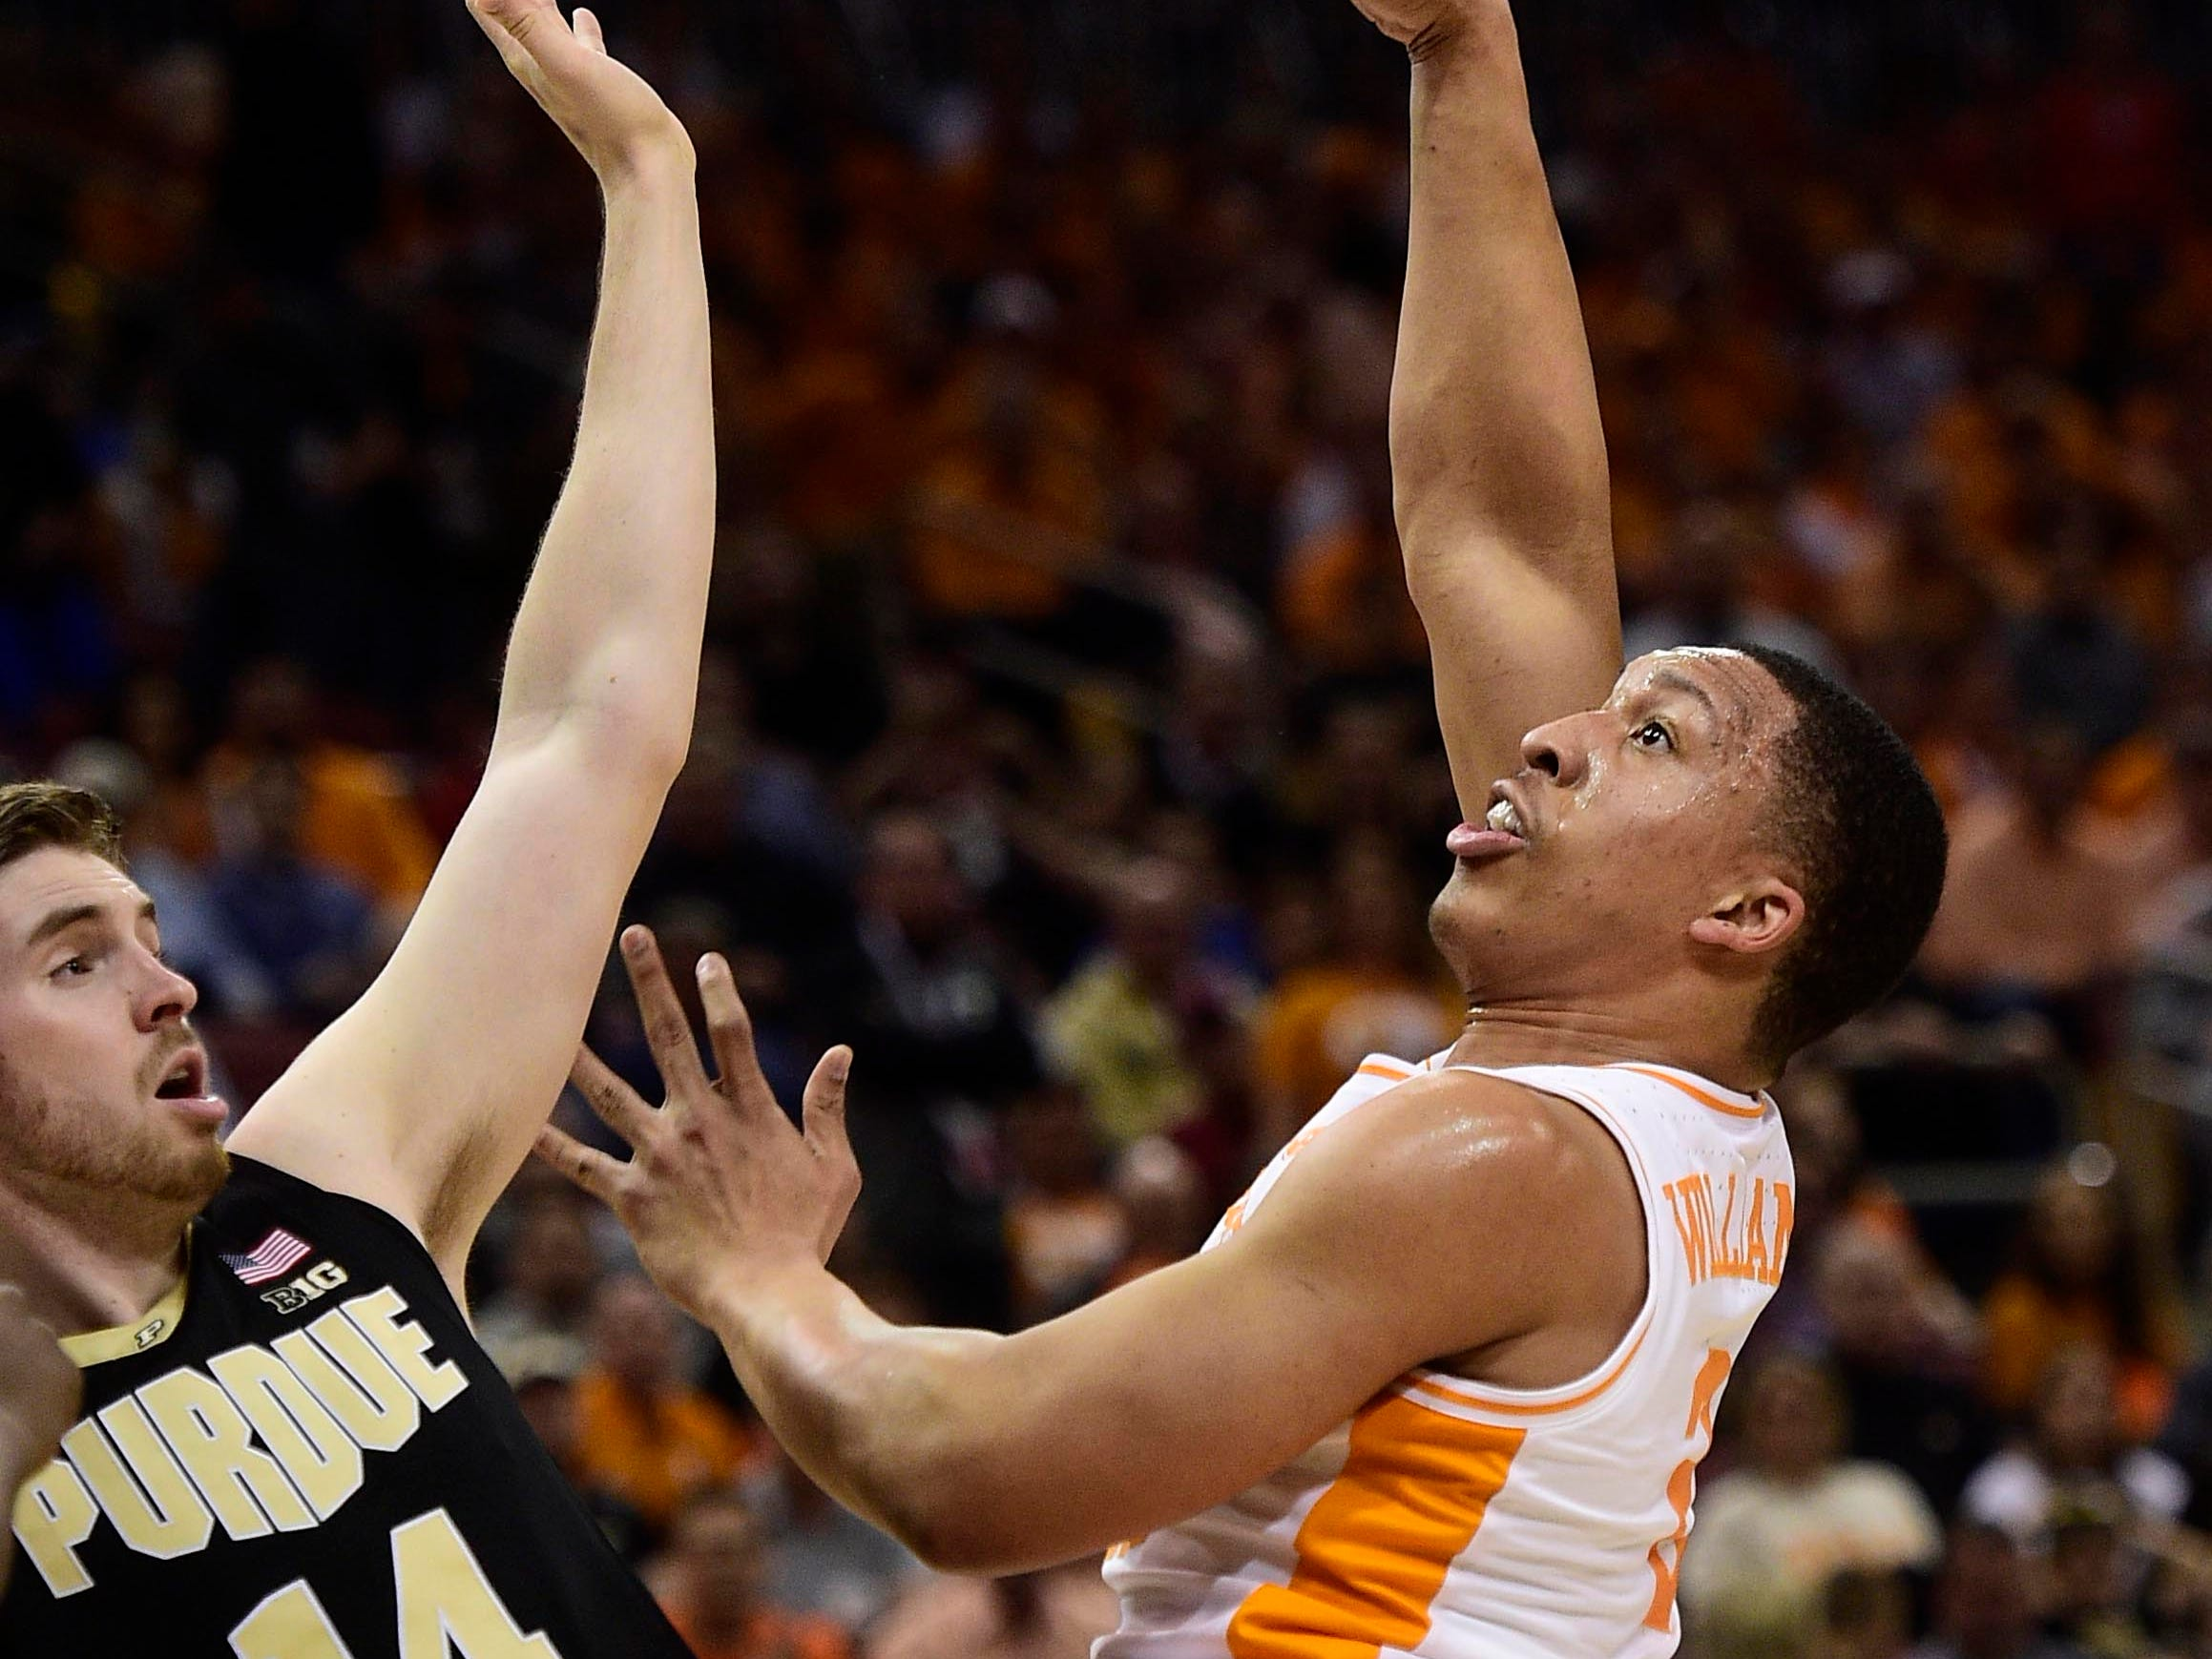 Mar 28, 2019; Louisville, KY, United States; Tennessee Volunteers forward Grant Williams (2) shoots as Purdue Boilermakers guard Ryan Cline (14) defends during the first half in the semifinals of the south regional of the 2019 NCAA Tournament at KFC Yum Center. Mandatory Credit: Thomas J. Russo-USA TODAY Sports